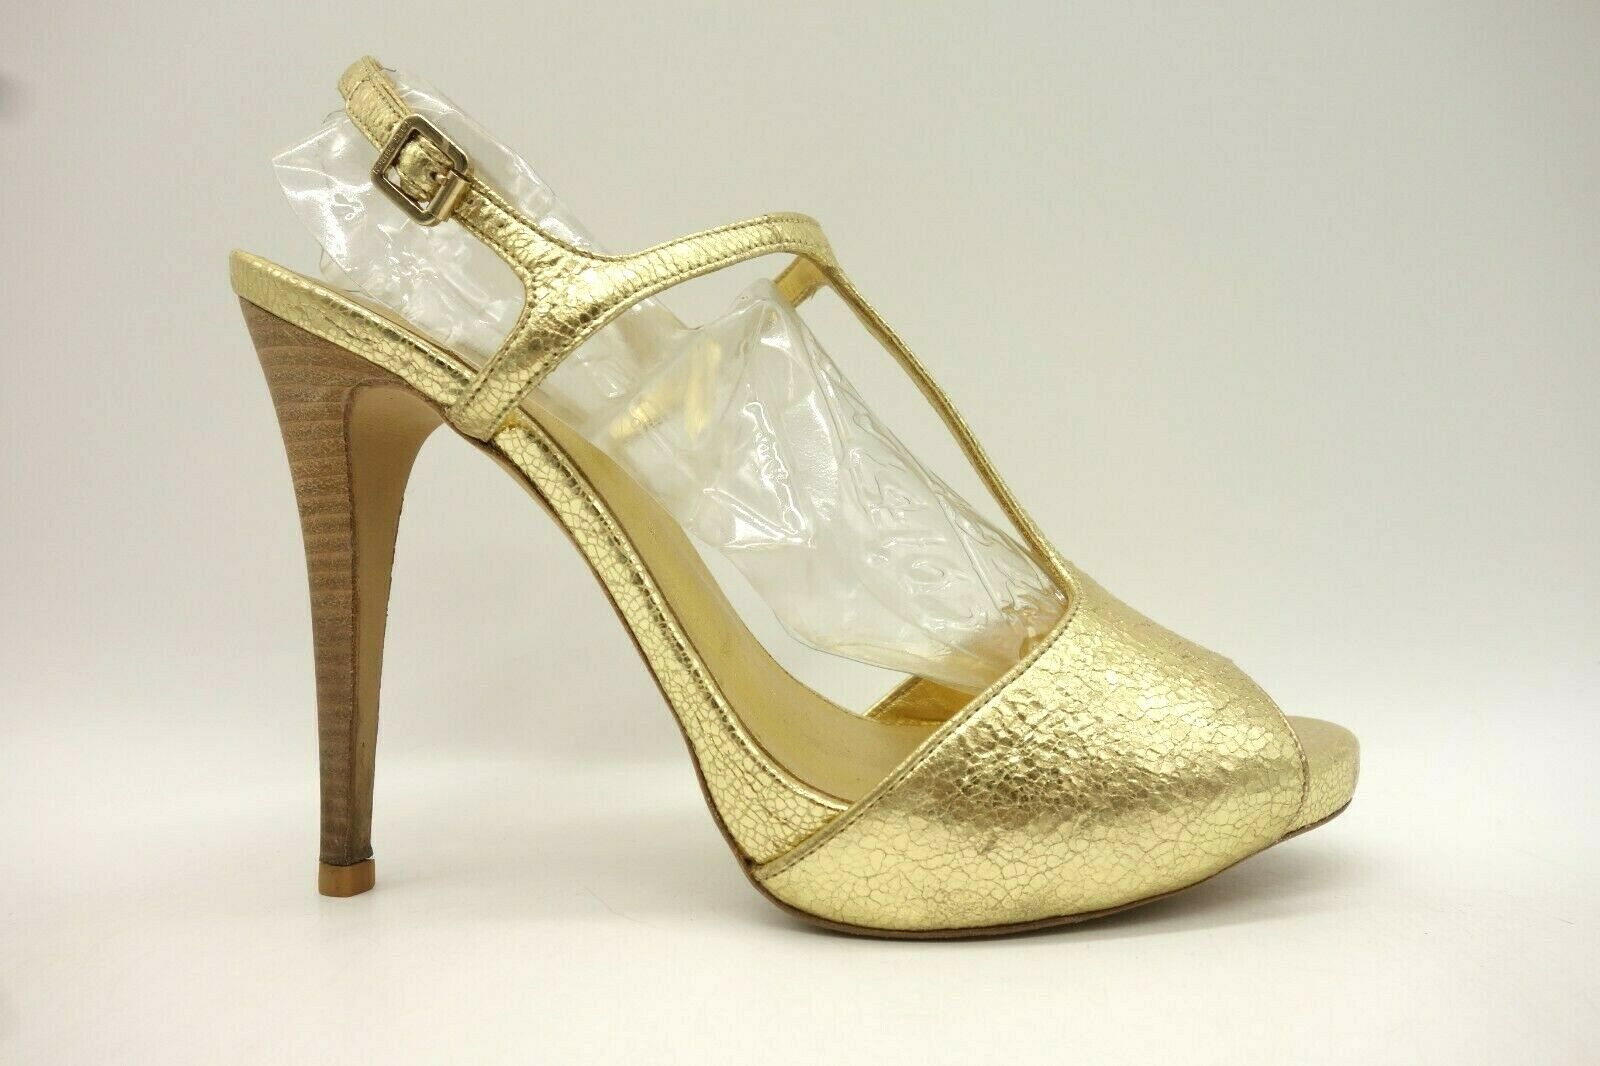 Tory Burch gold Crackle Leather Ankle T-Strap Open Toe Heels Women's 9 M